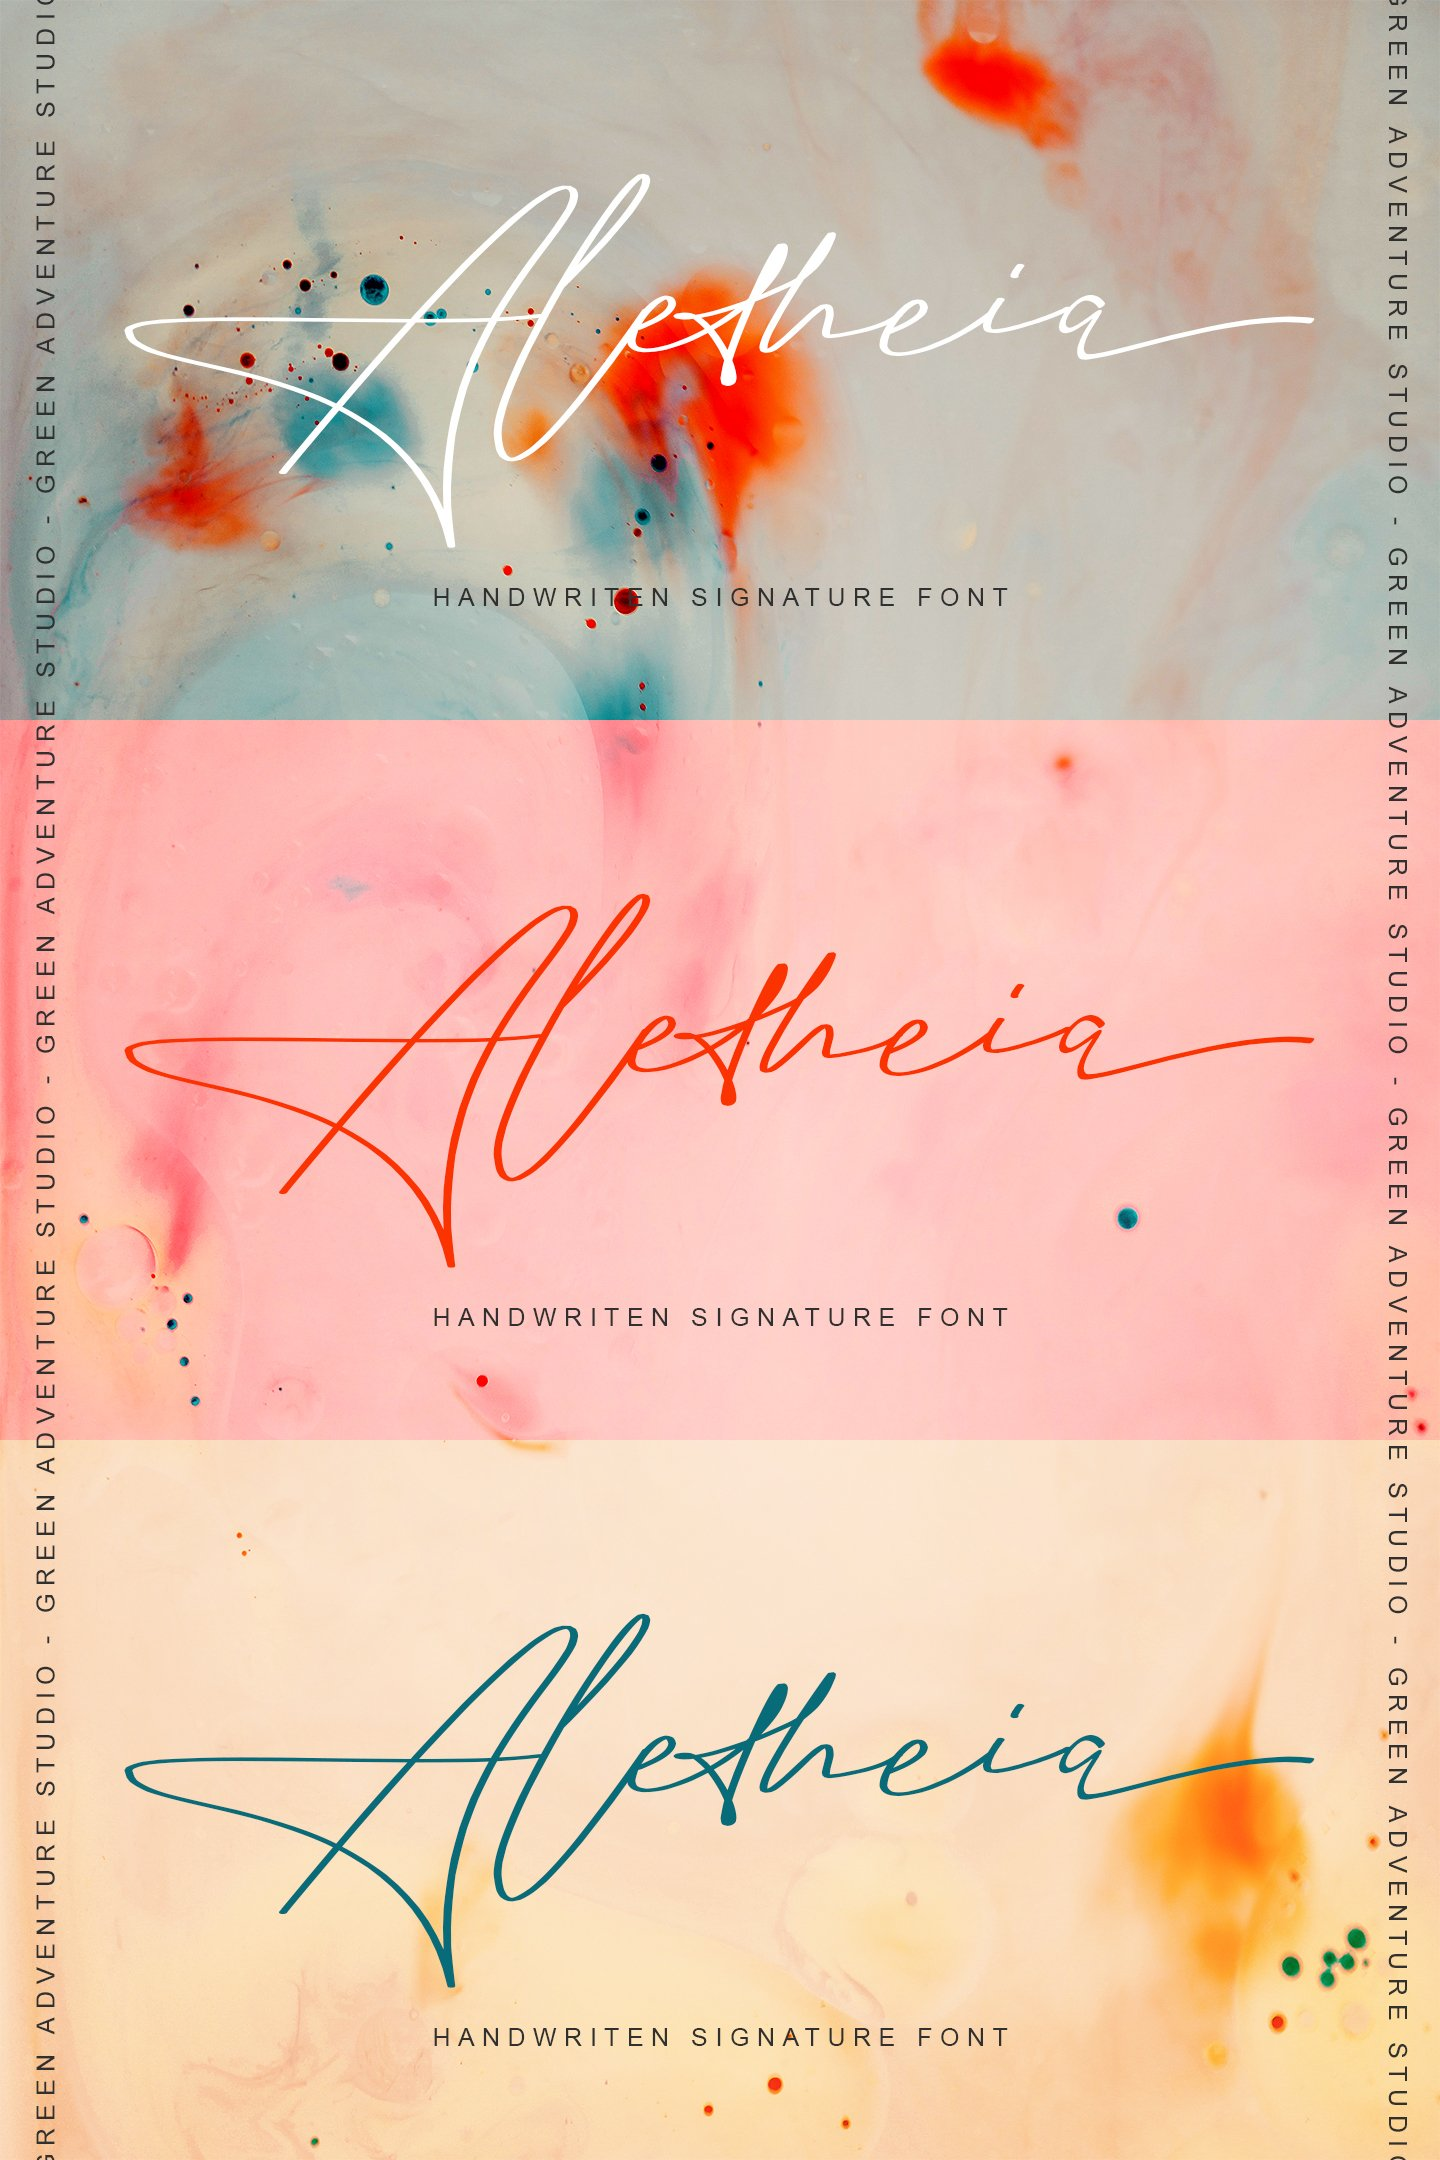 Aletheia | A Handwritten Signature Font example image 2